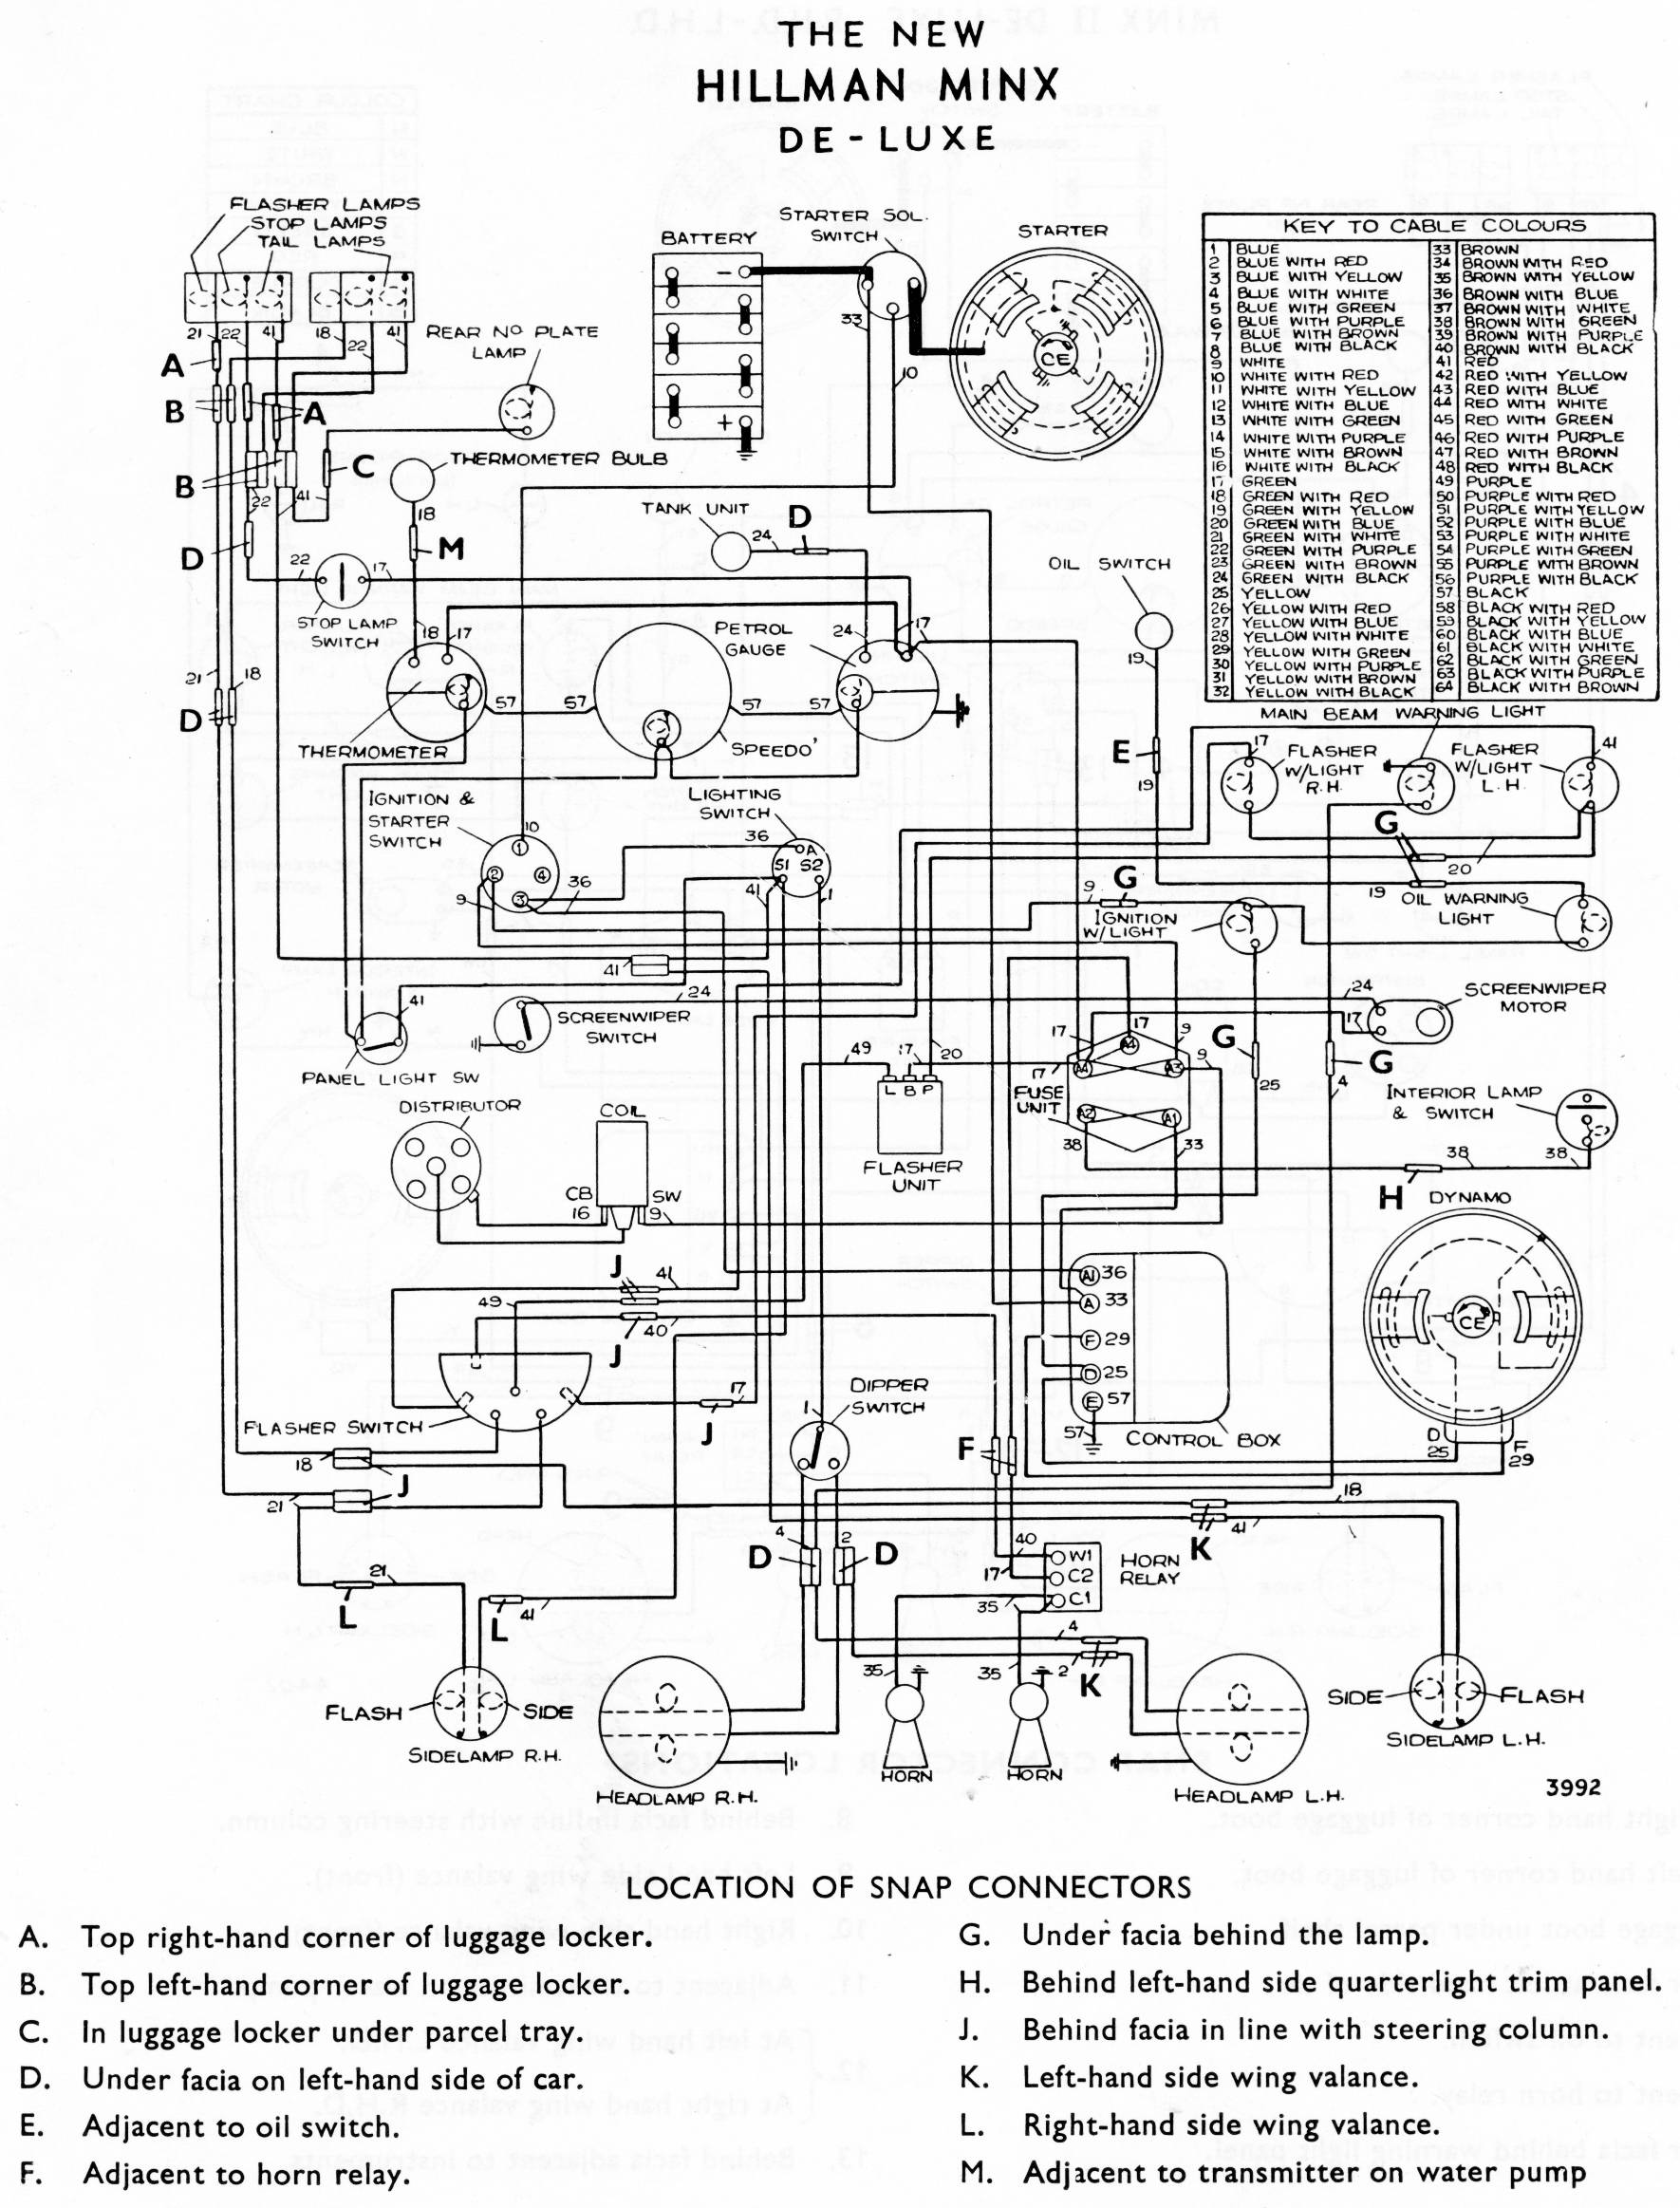 Hillman Car Club Of South Australia Wiring Diagrams Diagram Lights In Series Minx Ii De Luxe Has 2 Warning For Flashing Indicators Usa